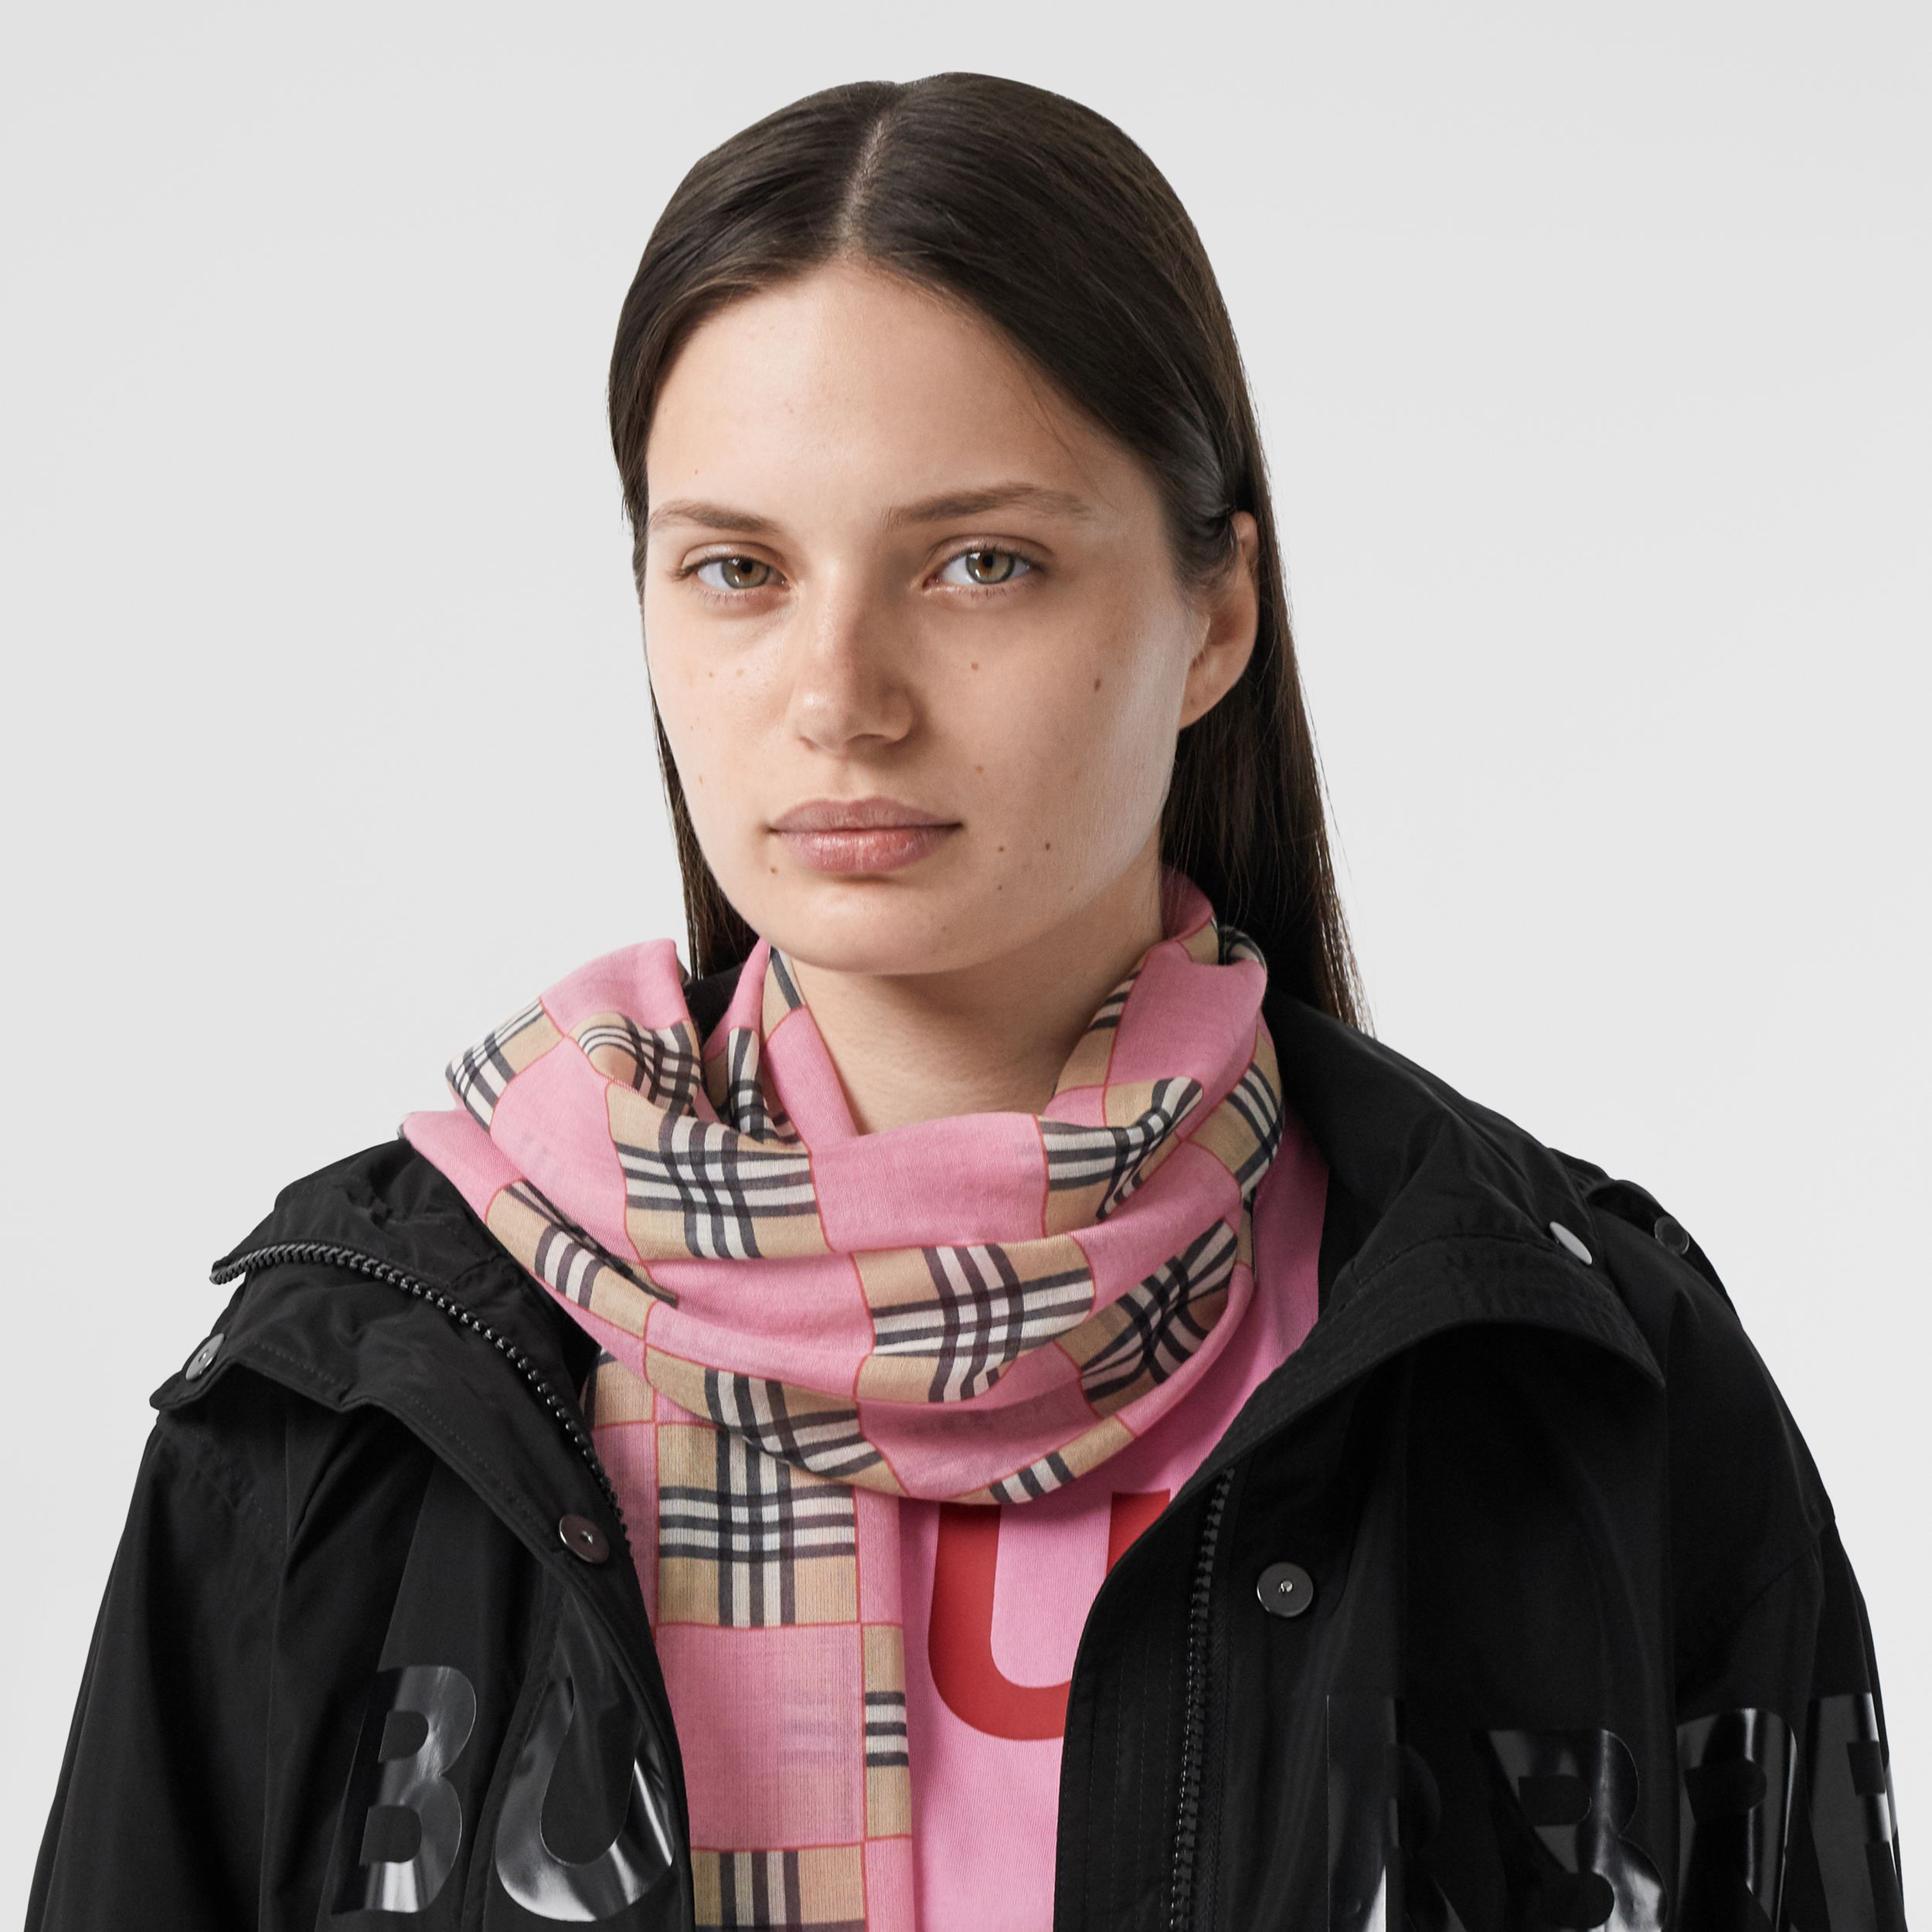 Chequer Print Wool Silk Scarf in Pink | Burberry Australia - 3